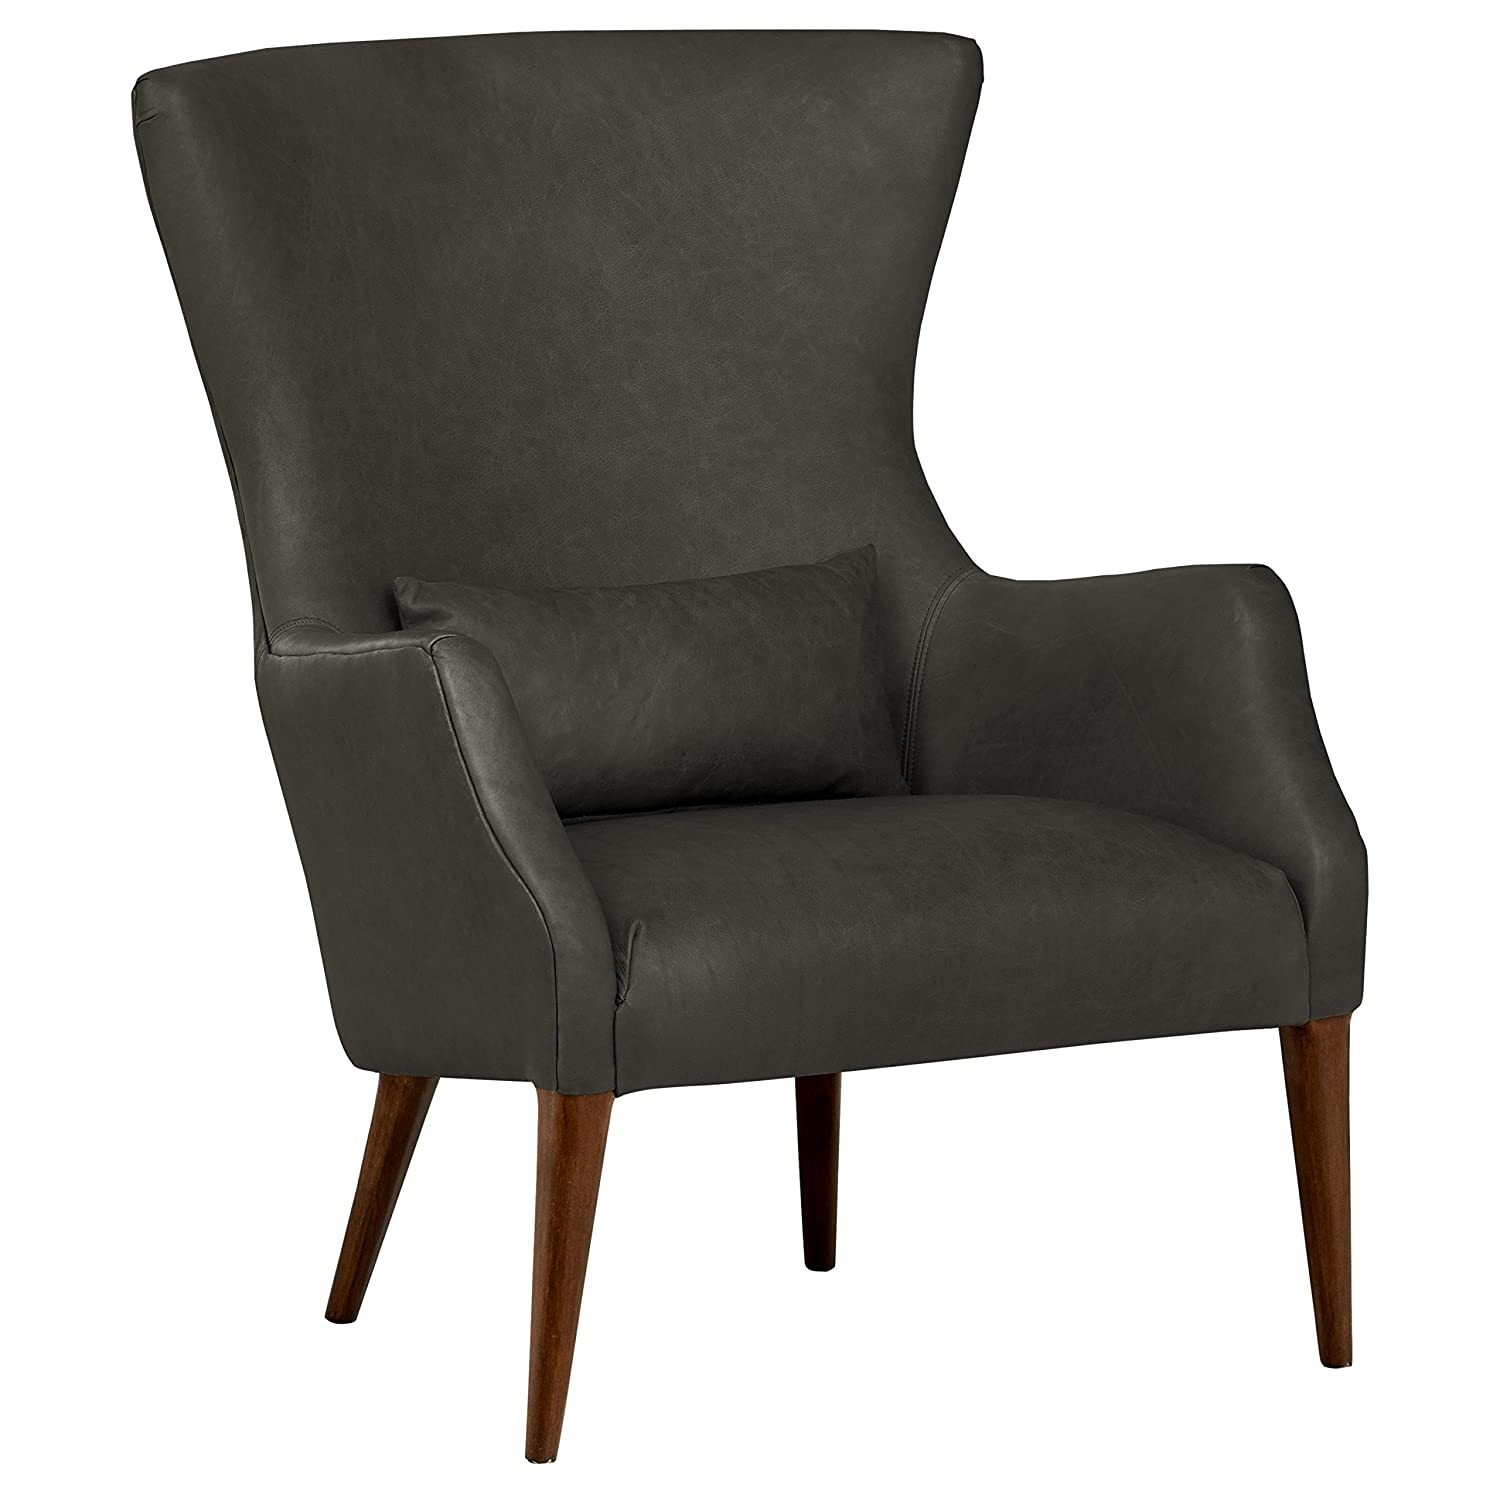 Amazon com rivet parks mid century modern wingback leather chair 30 5w aged black kitchen dining